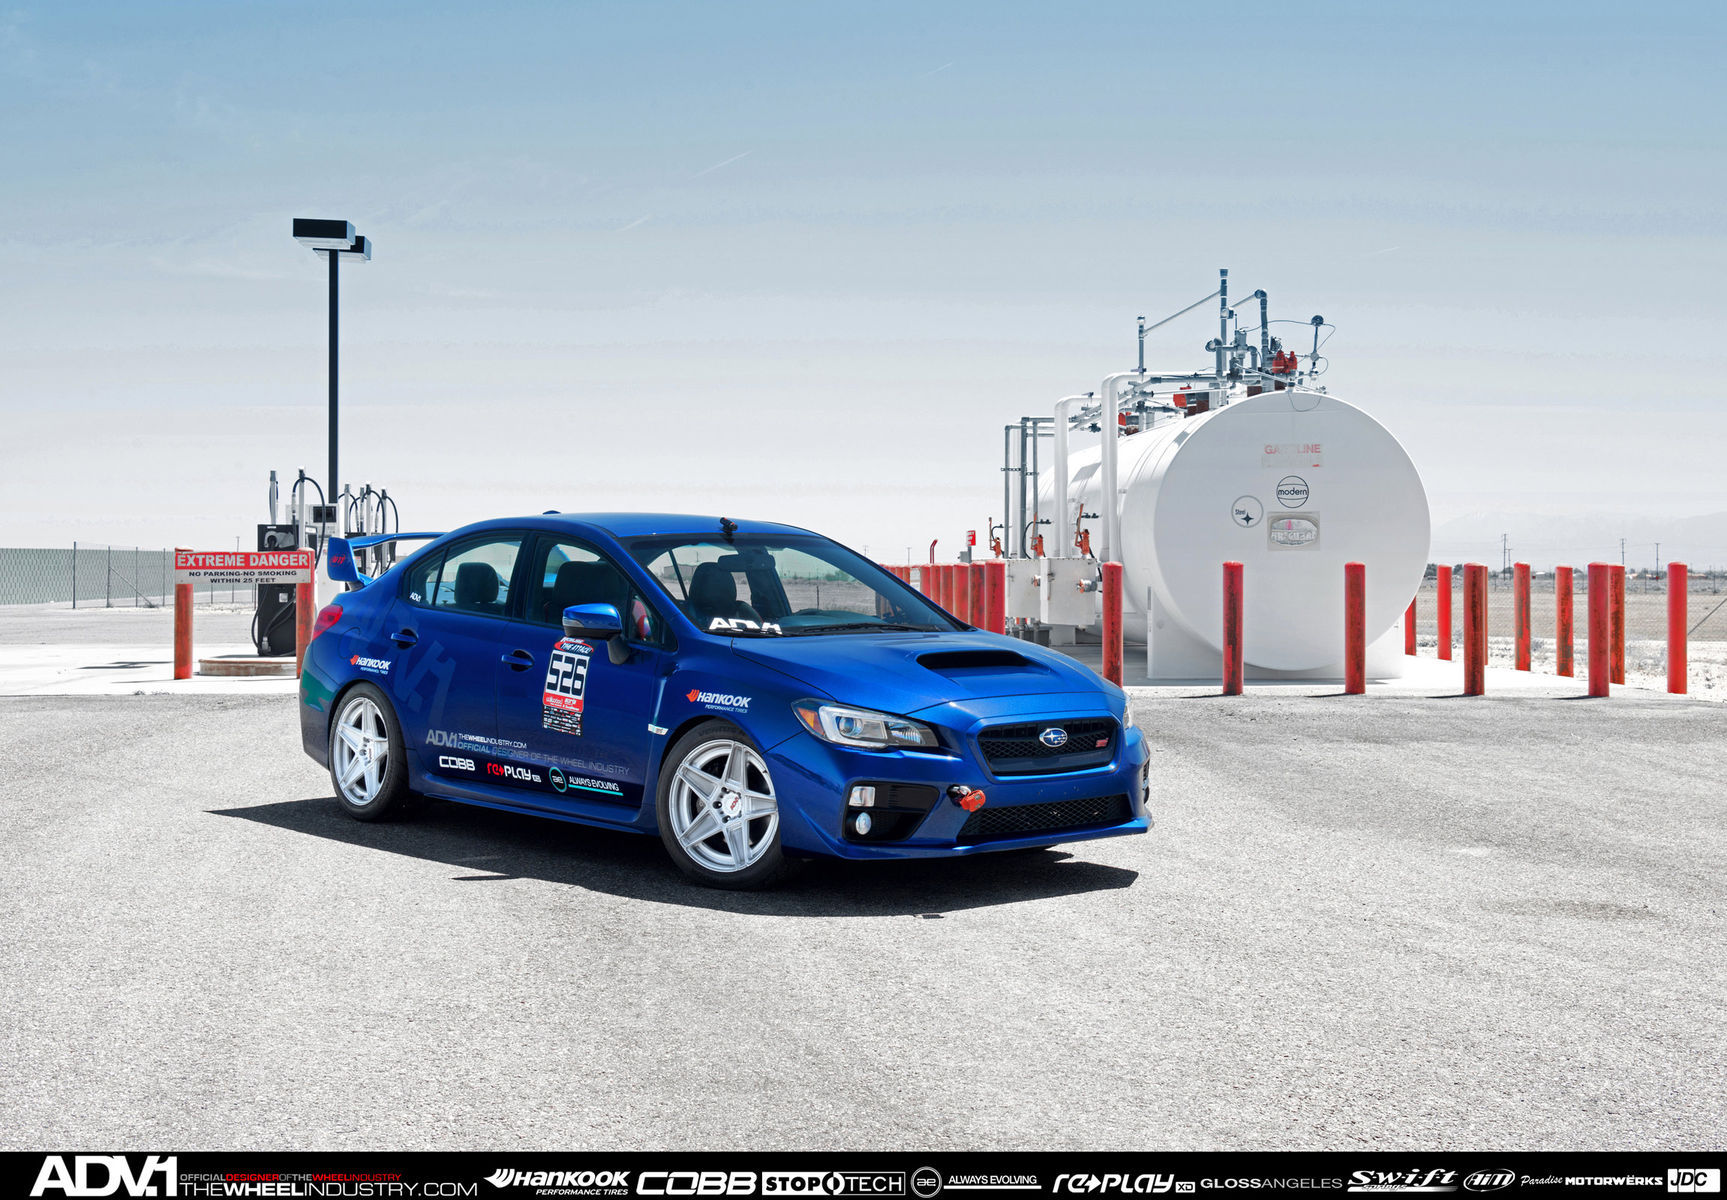 2015 Subaru STI | SUBARU STI ADV5S REDLINE TIME ATTACK: ROUND 2 - BIG WILLOW - APRIL 12